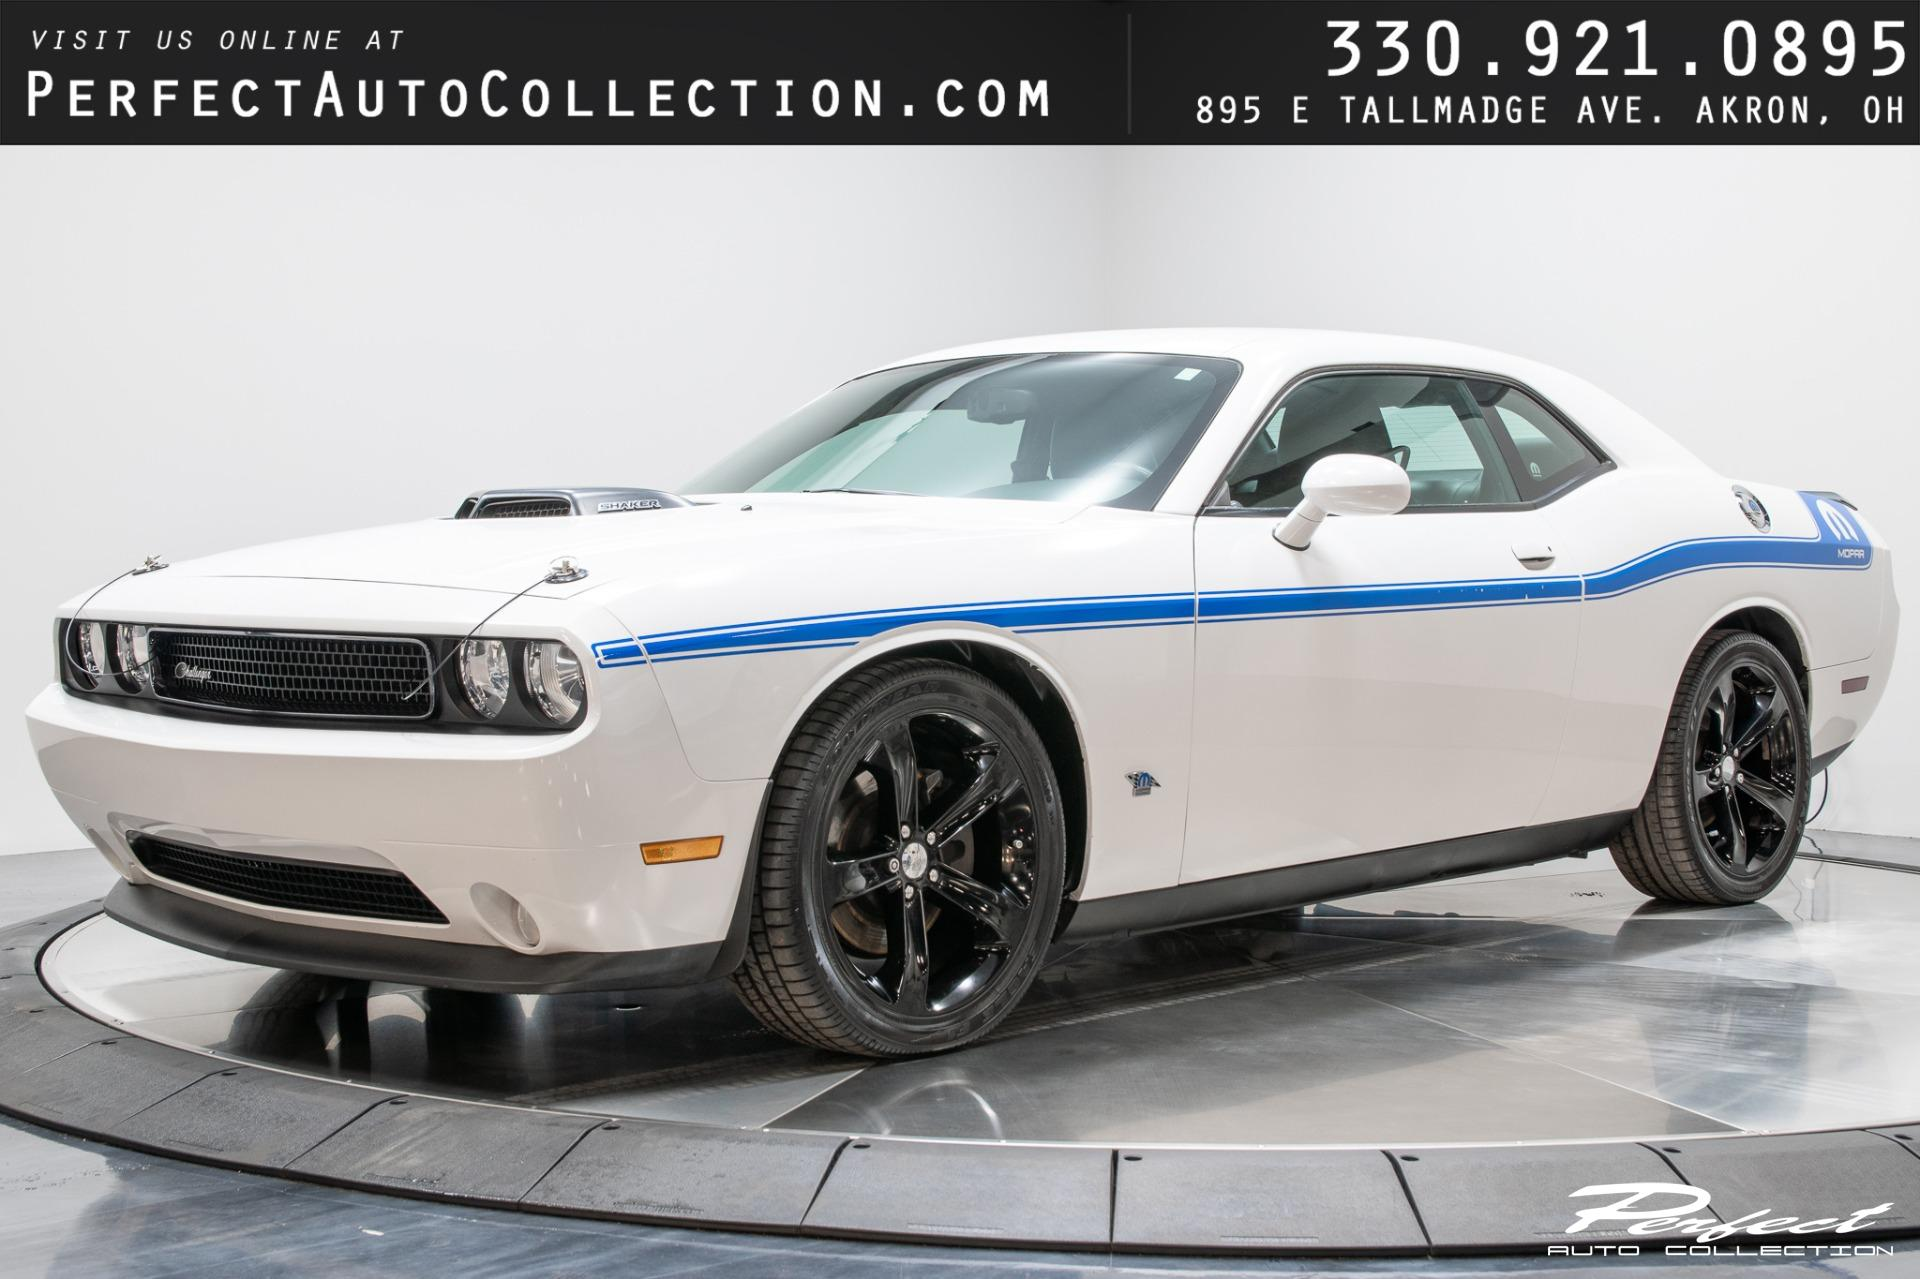 Used 2014 Dodge Challenger R/T Shaker MOPAR for sale Sold at Perfect Auto Collection in Akron OH 44310 1